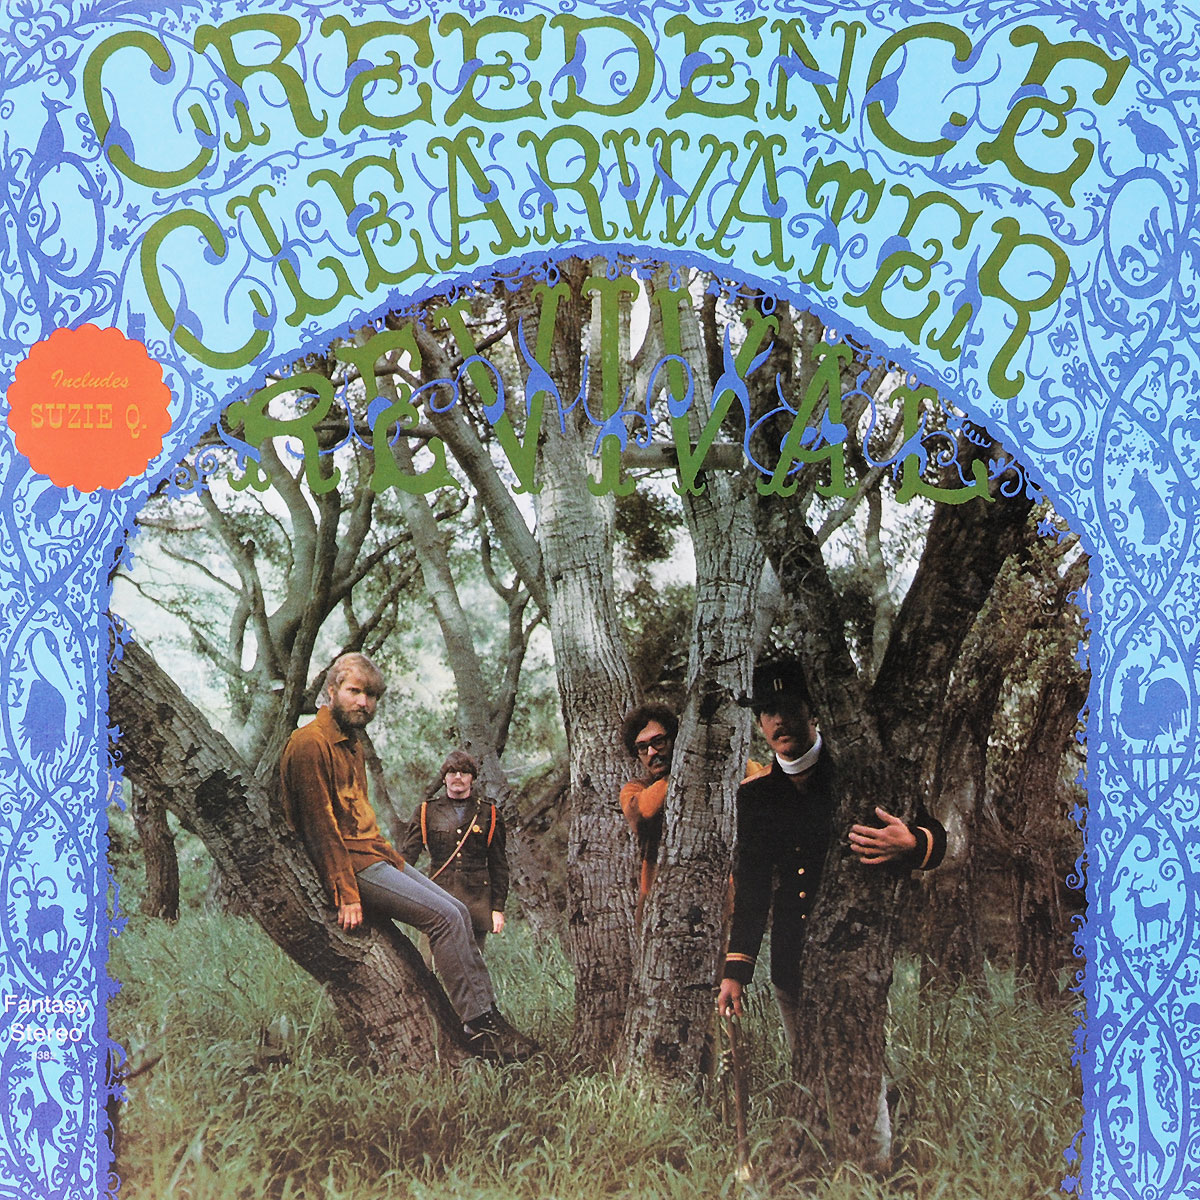 Creedence Clearwater Revival Creedence Clearwater Revival. Creedence Clearwater Revival (LP) виниловая пластинка creedence clearwater revival mardi gras